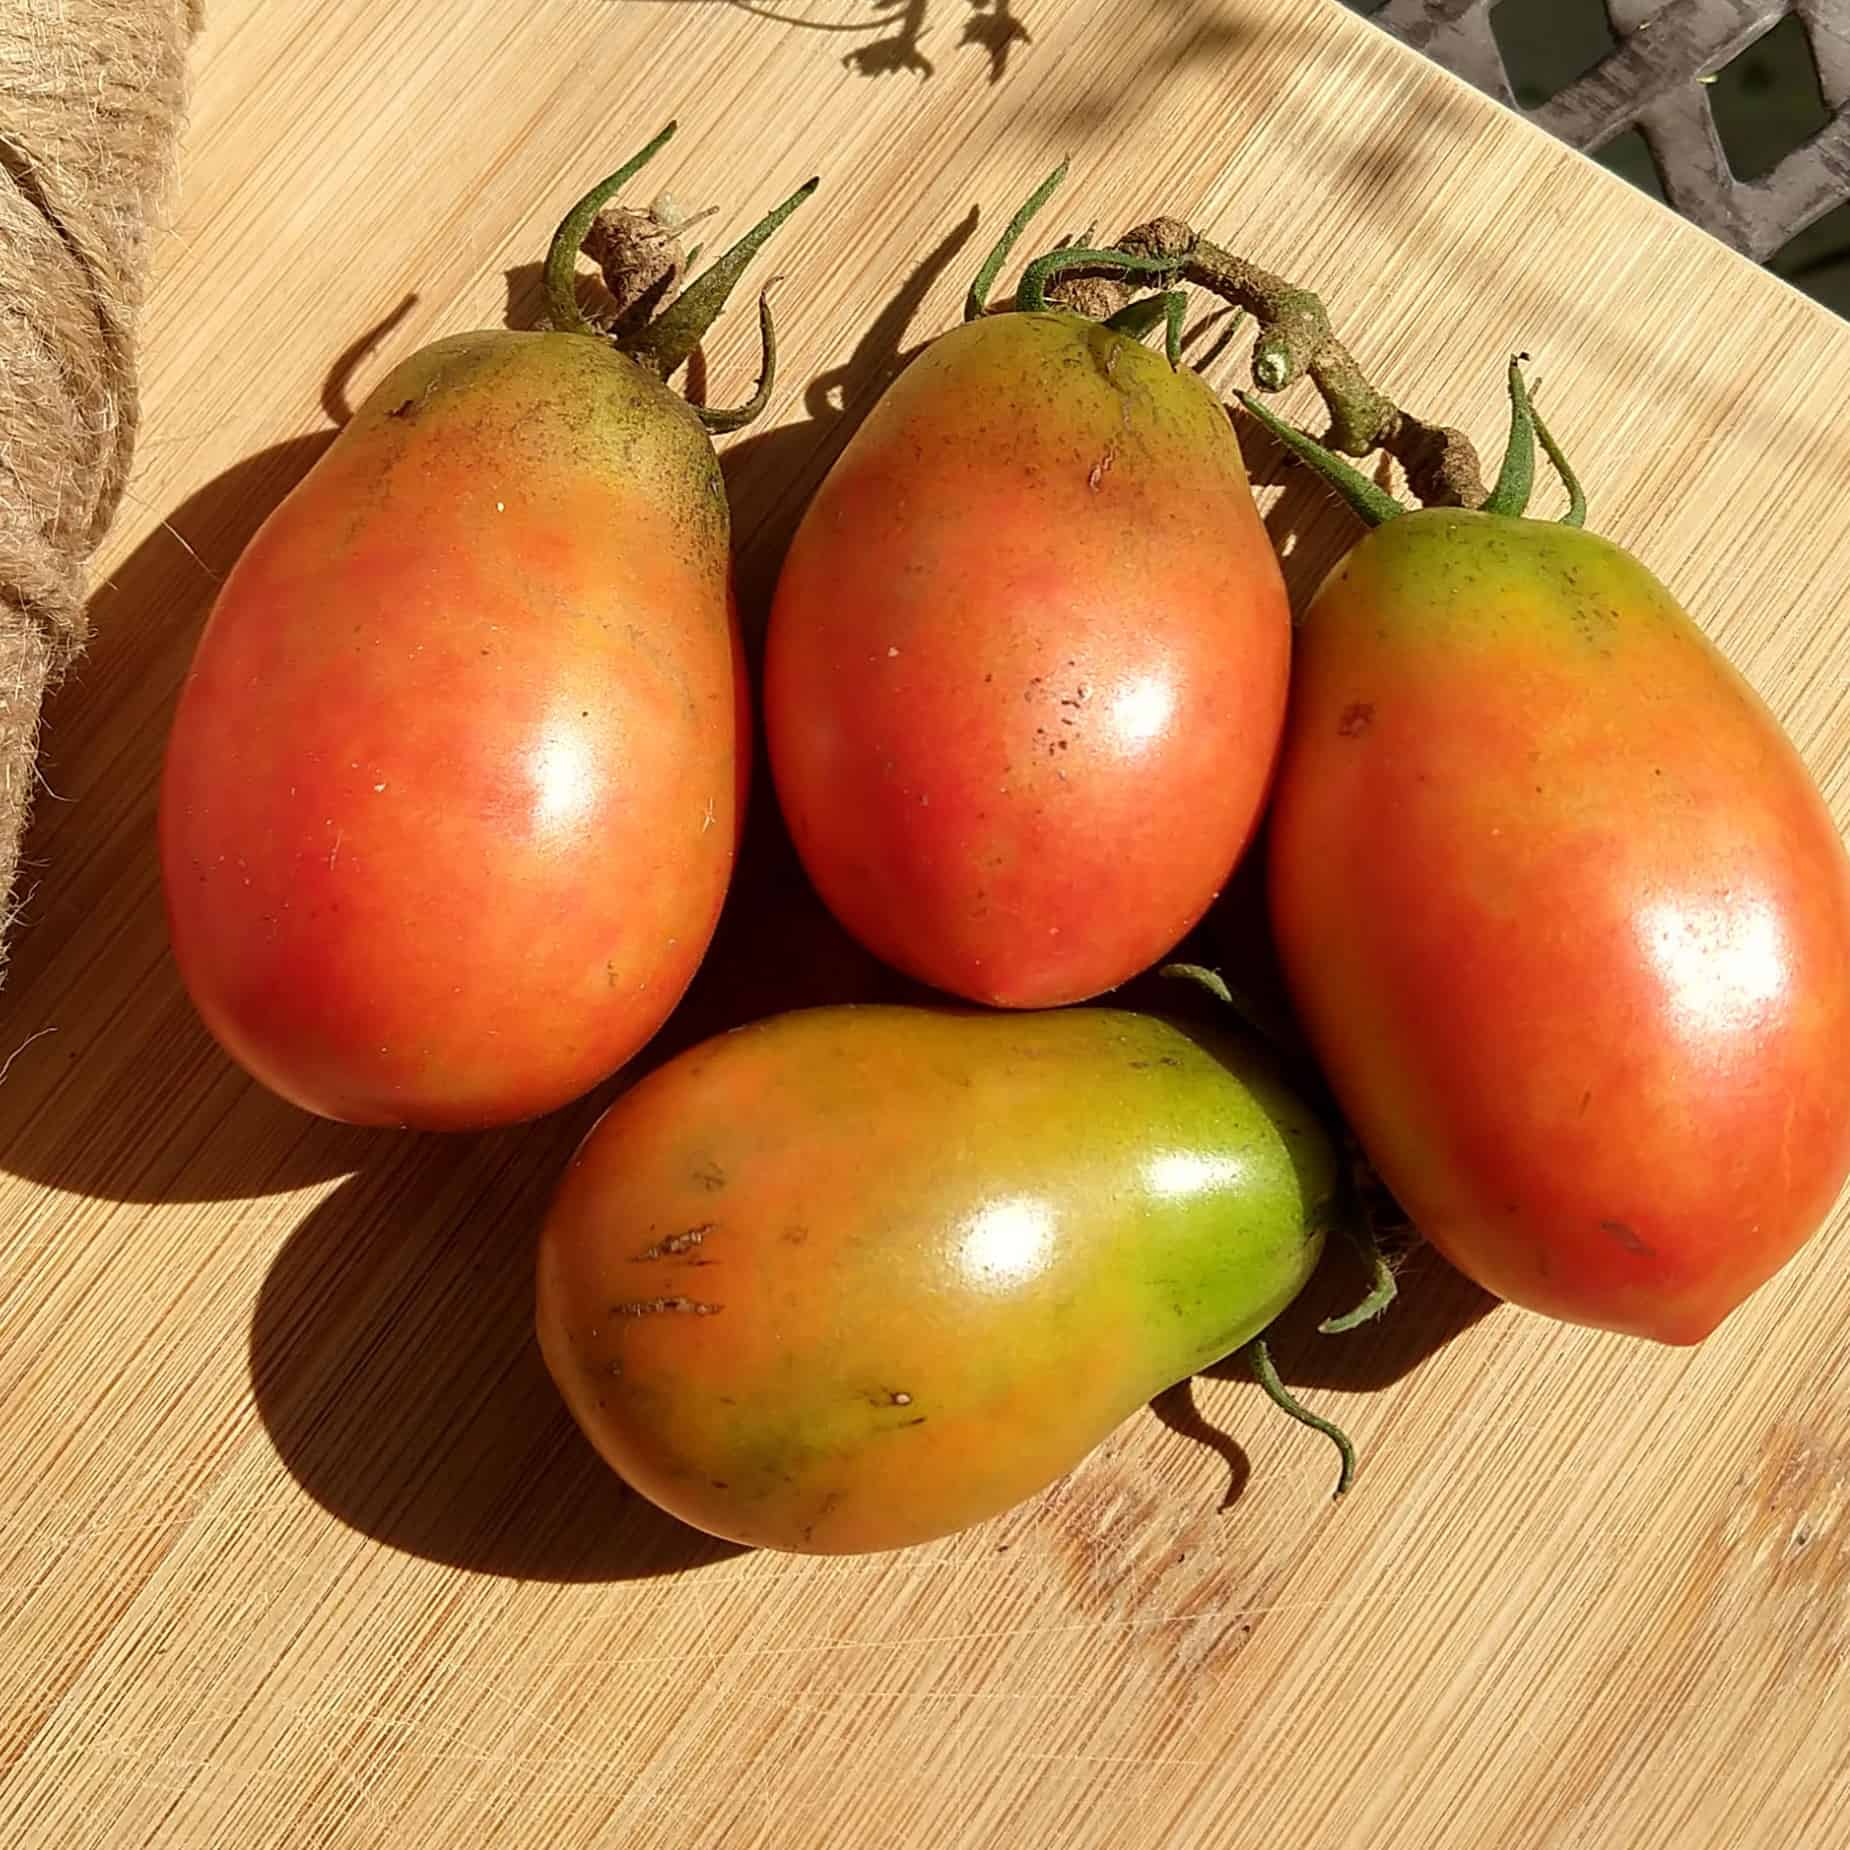 Wet Season gardening tomatoes